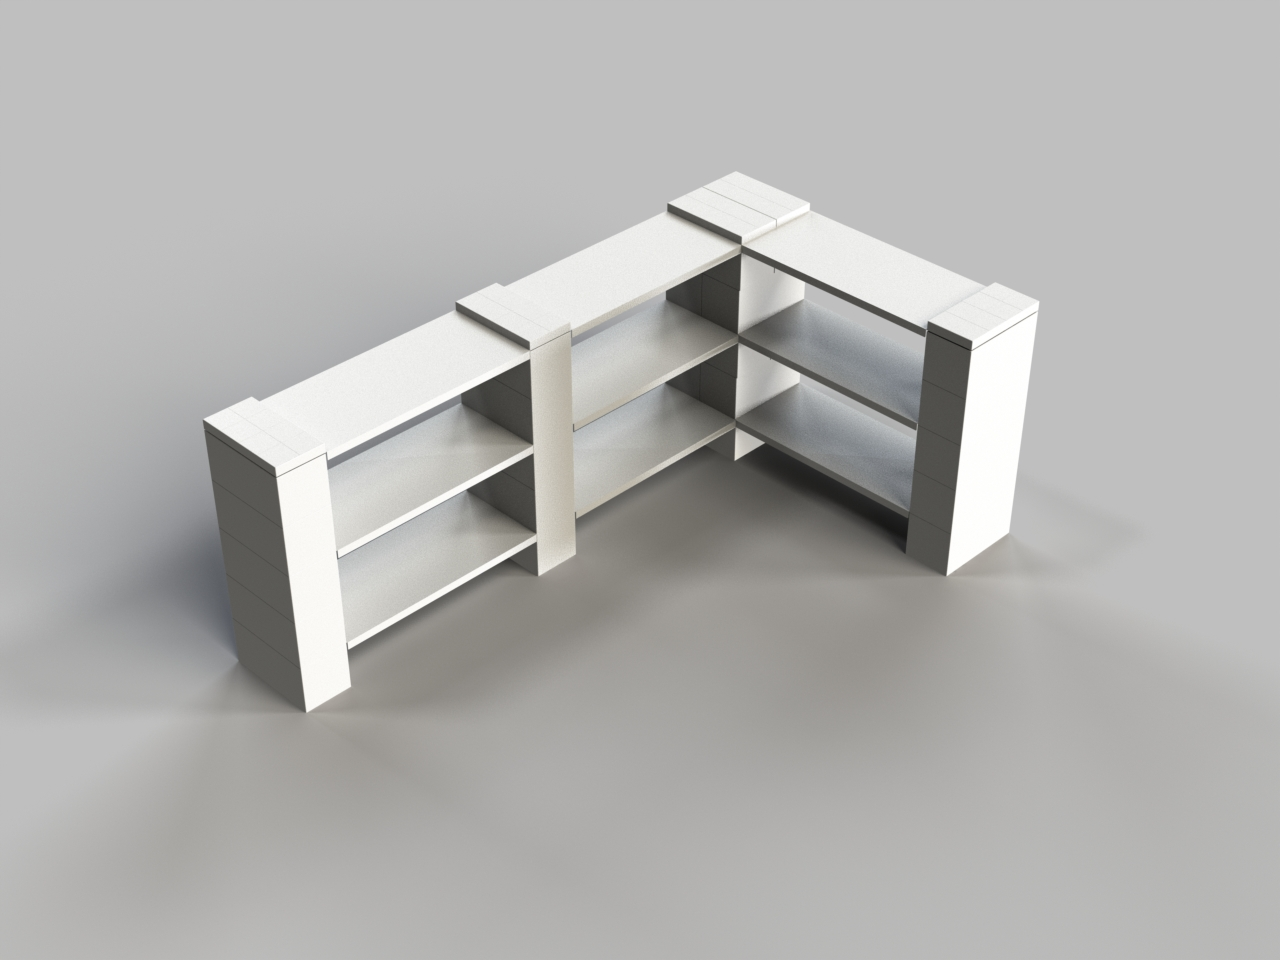 3 Level Double Corner Shelf B